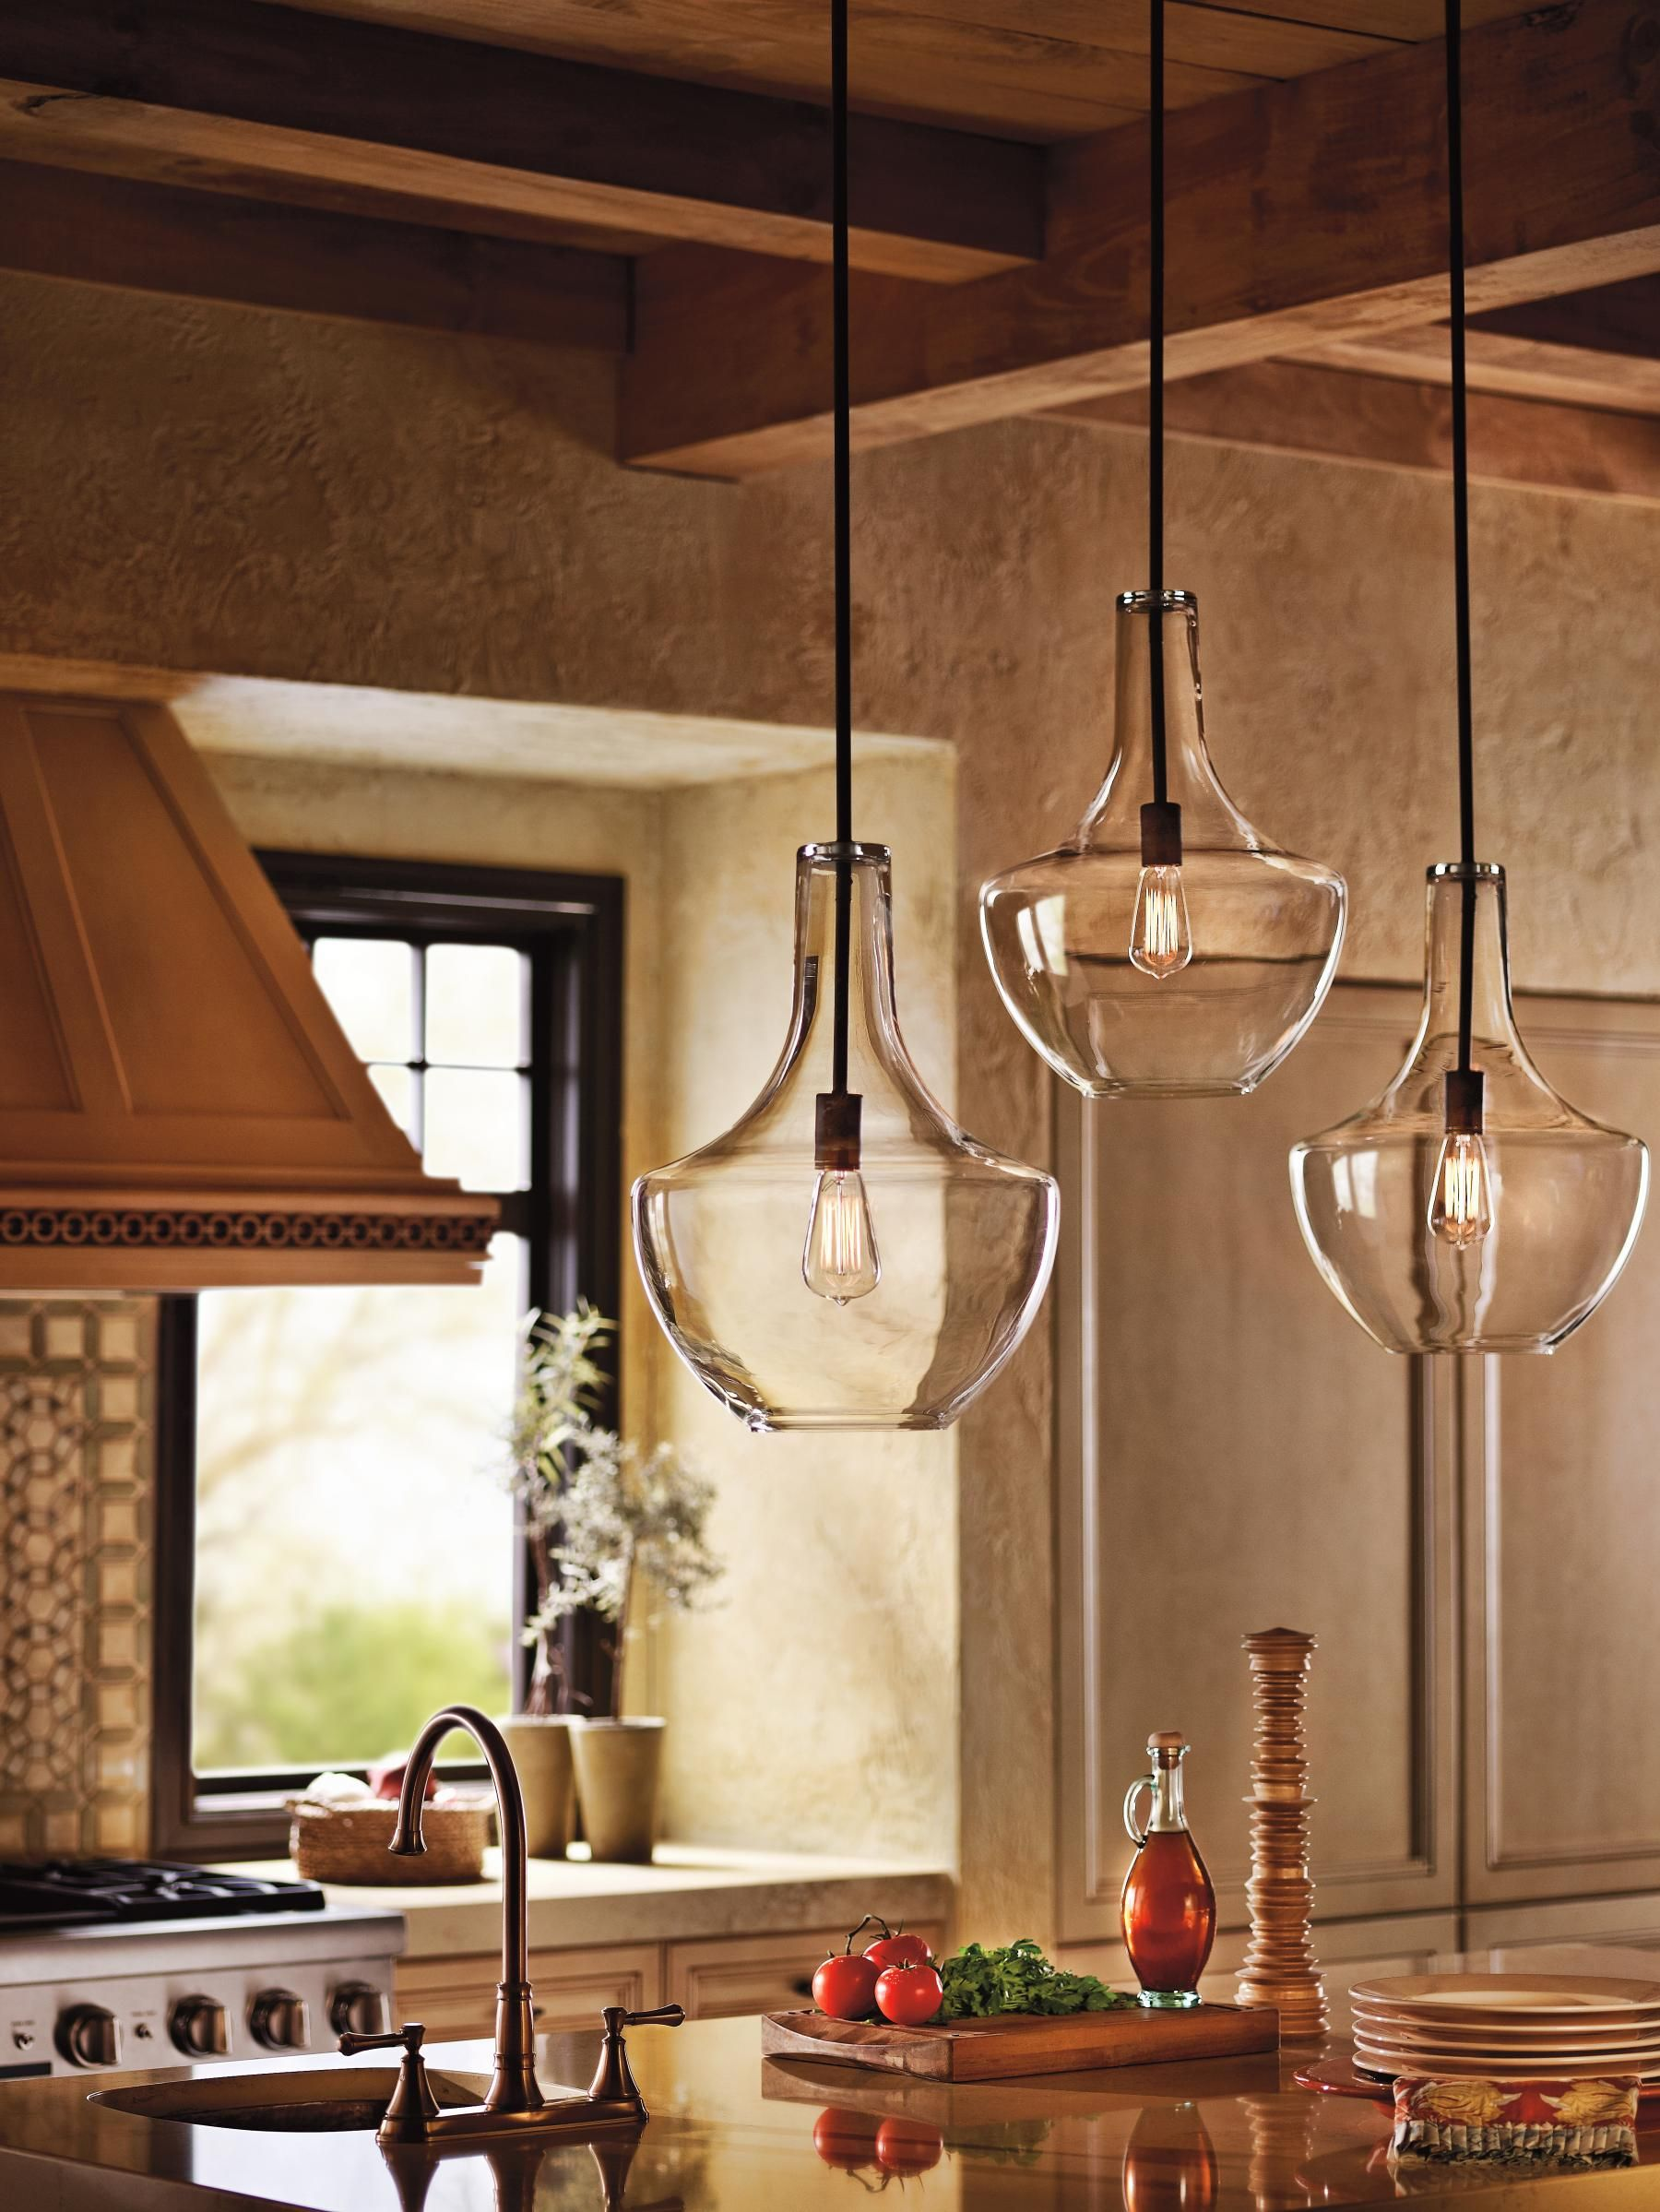 Pendant Lighting For Kitchen This Transitional Style Pendant Is A Perfect Option To Light Up